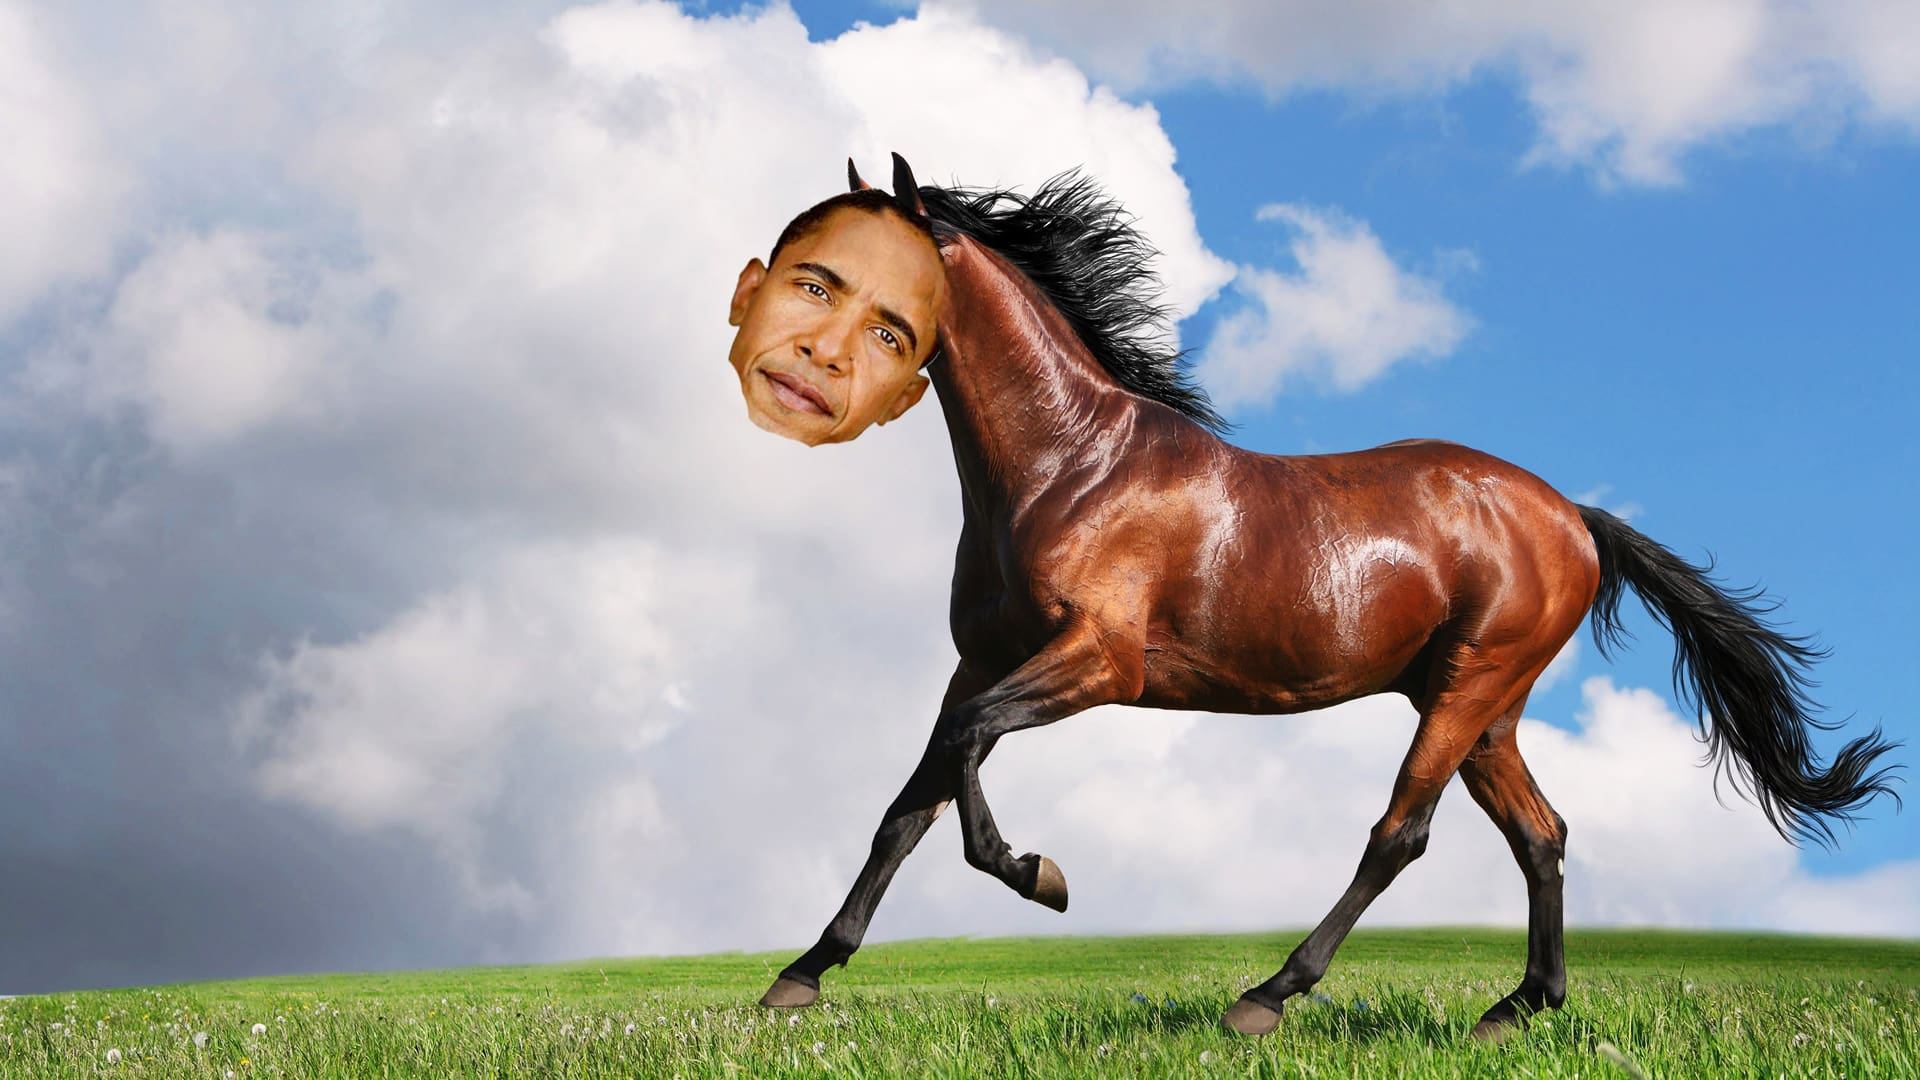 Photoshop Your Face Onto This Beautiful Horse By Photoshopproyes